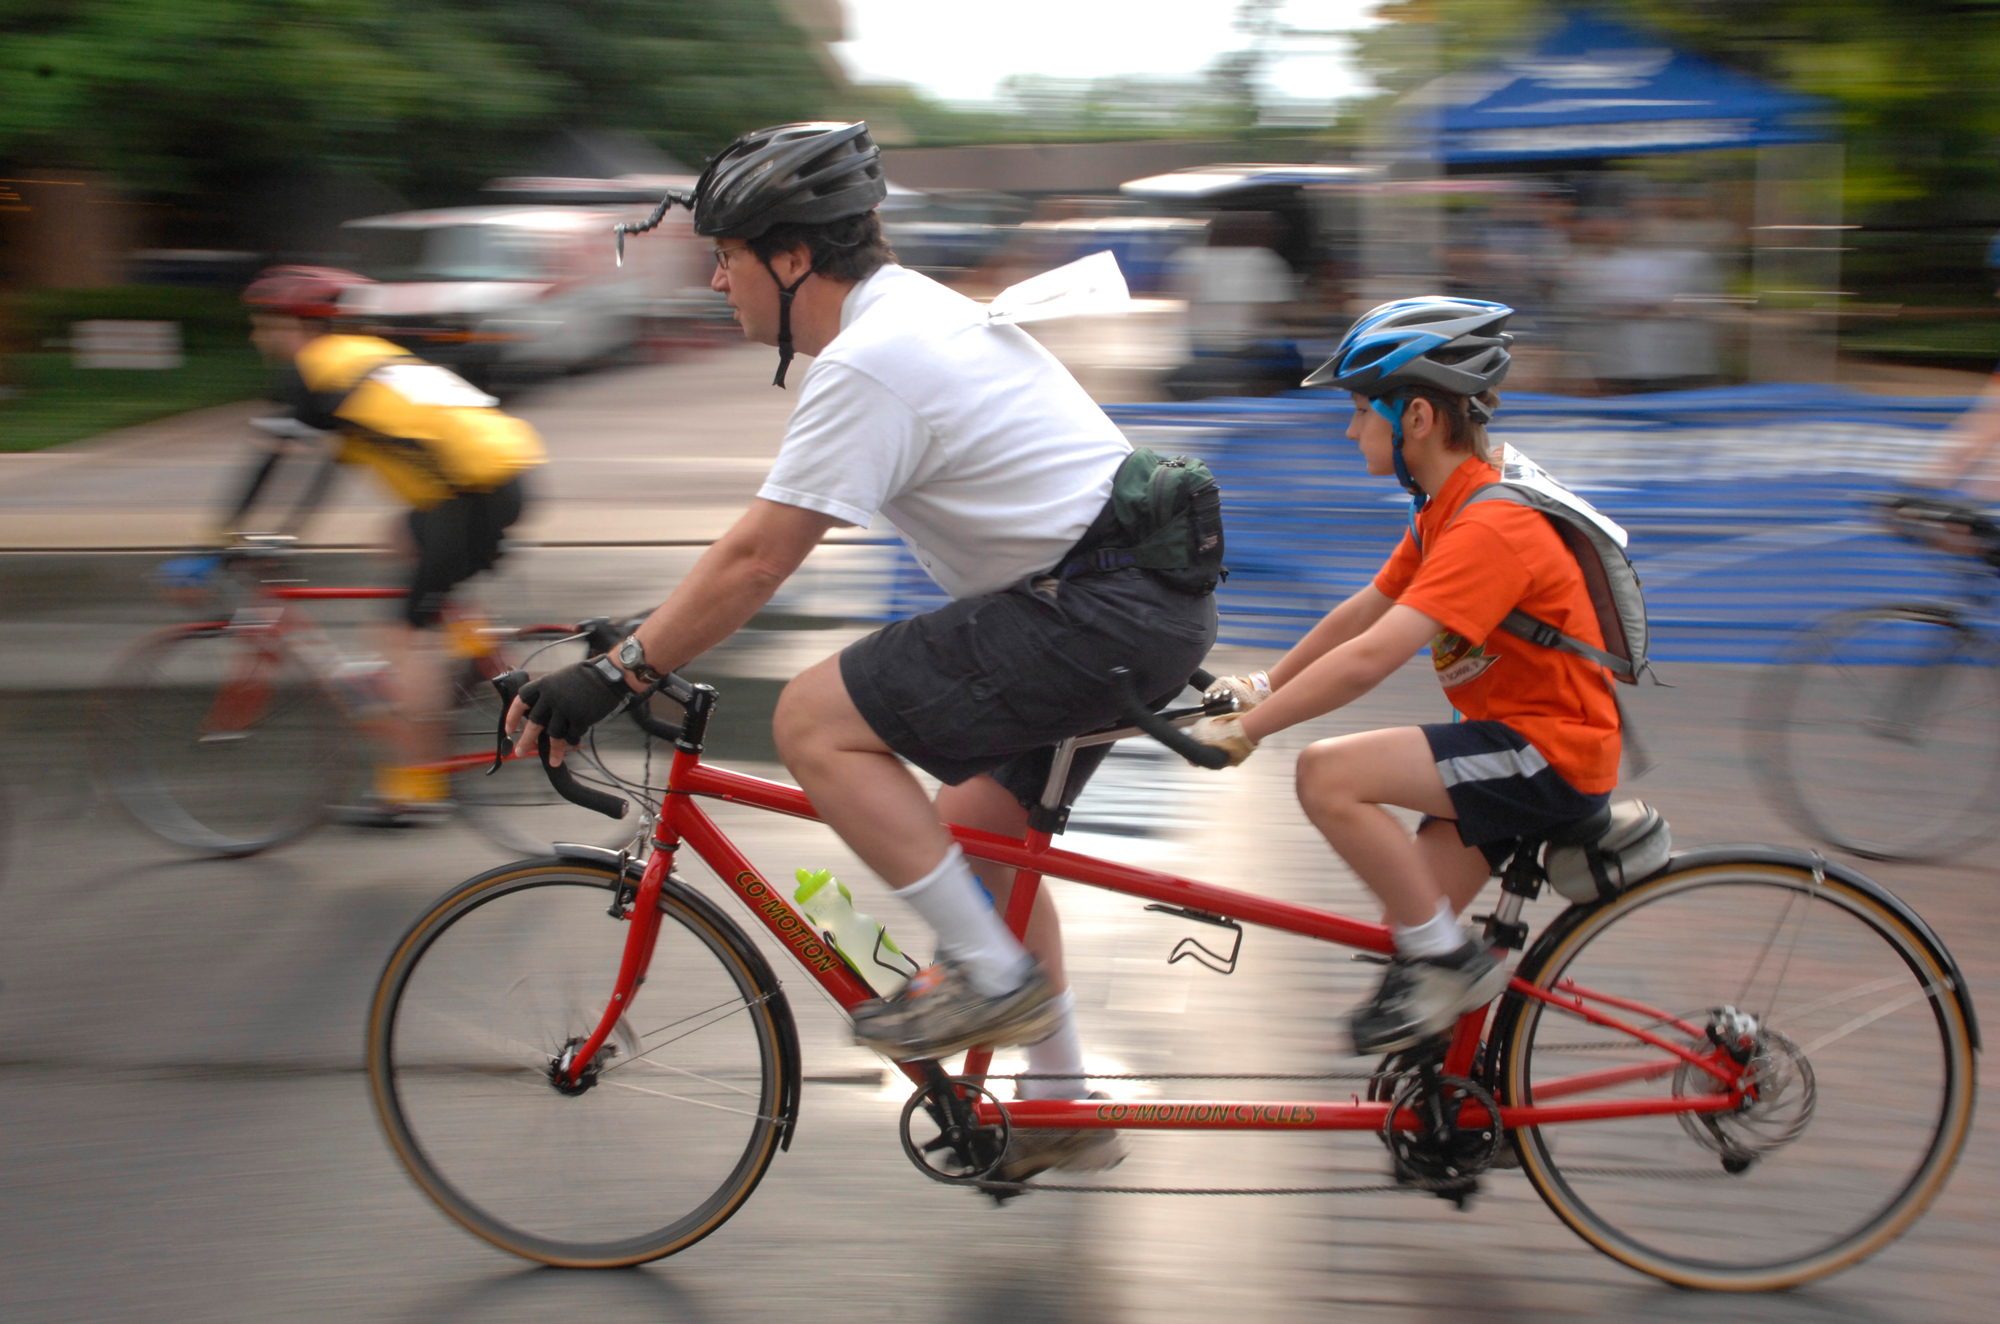 bicycle-cyclist-riding-bike-LOW-RES.jpg